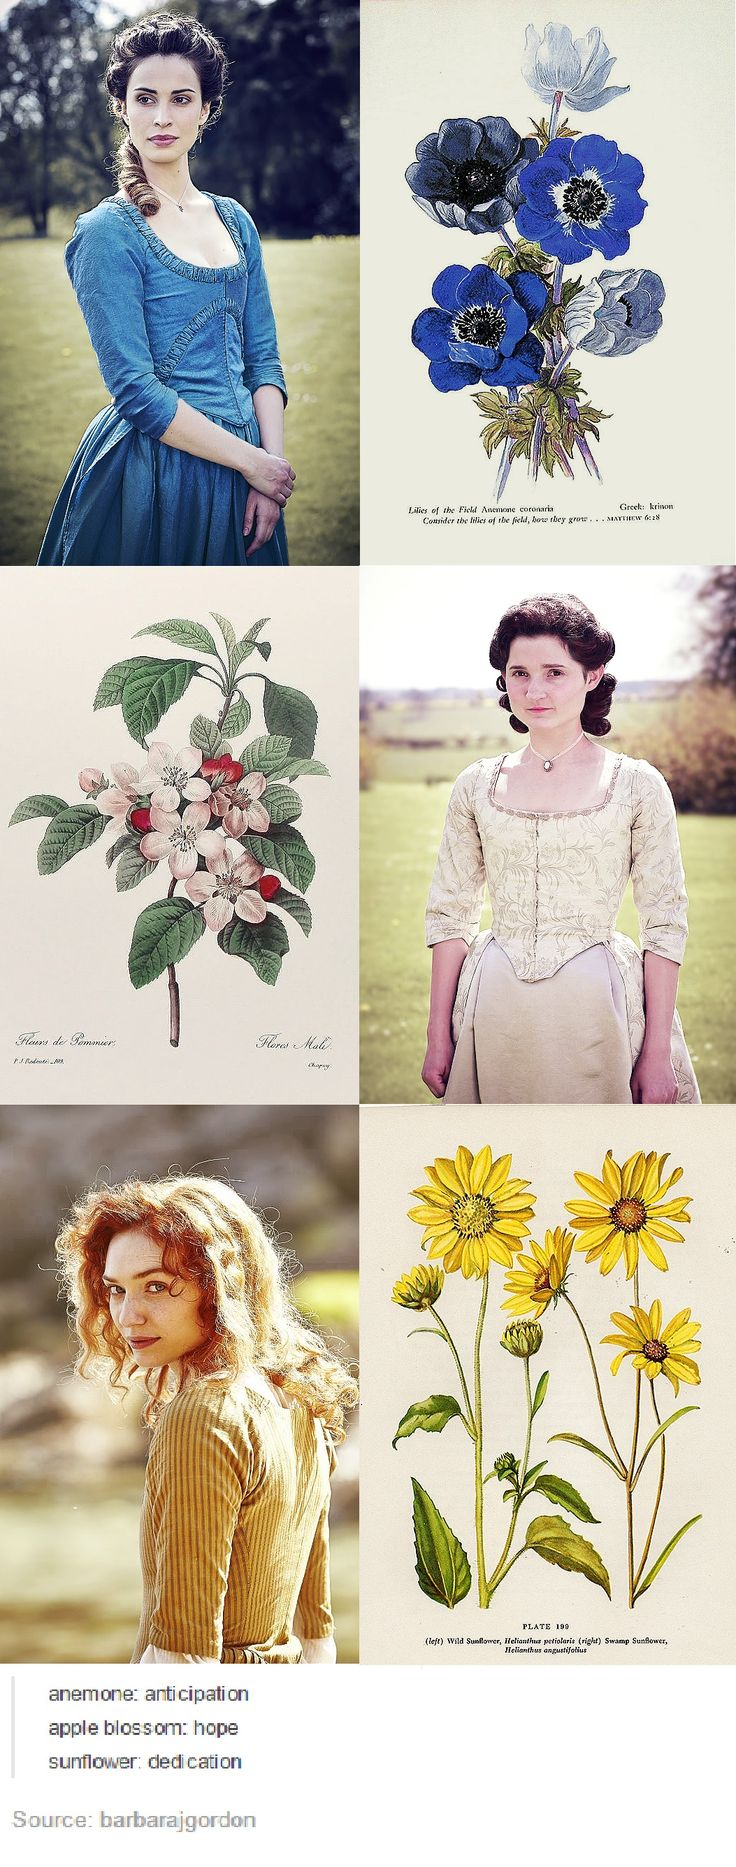 The Women of Poldark In Flowers  http://barbarajgordon.tumblr.com/